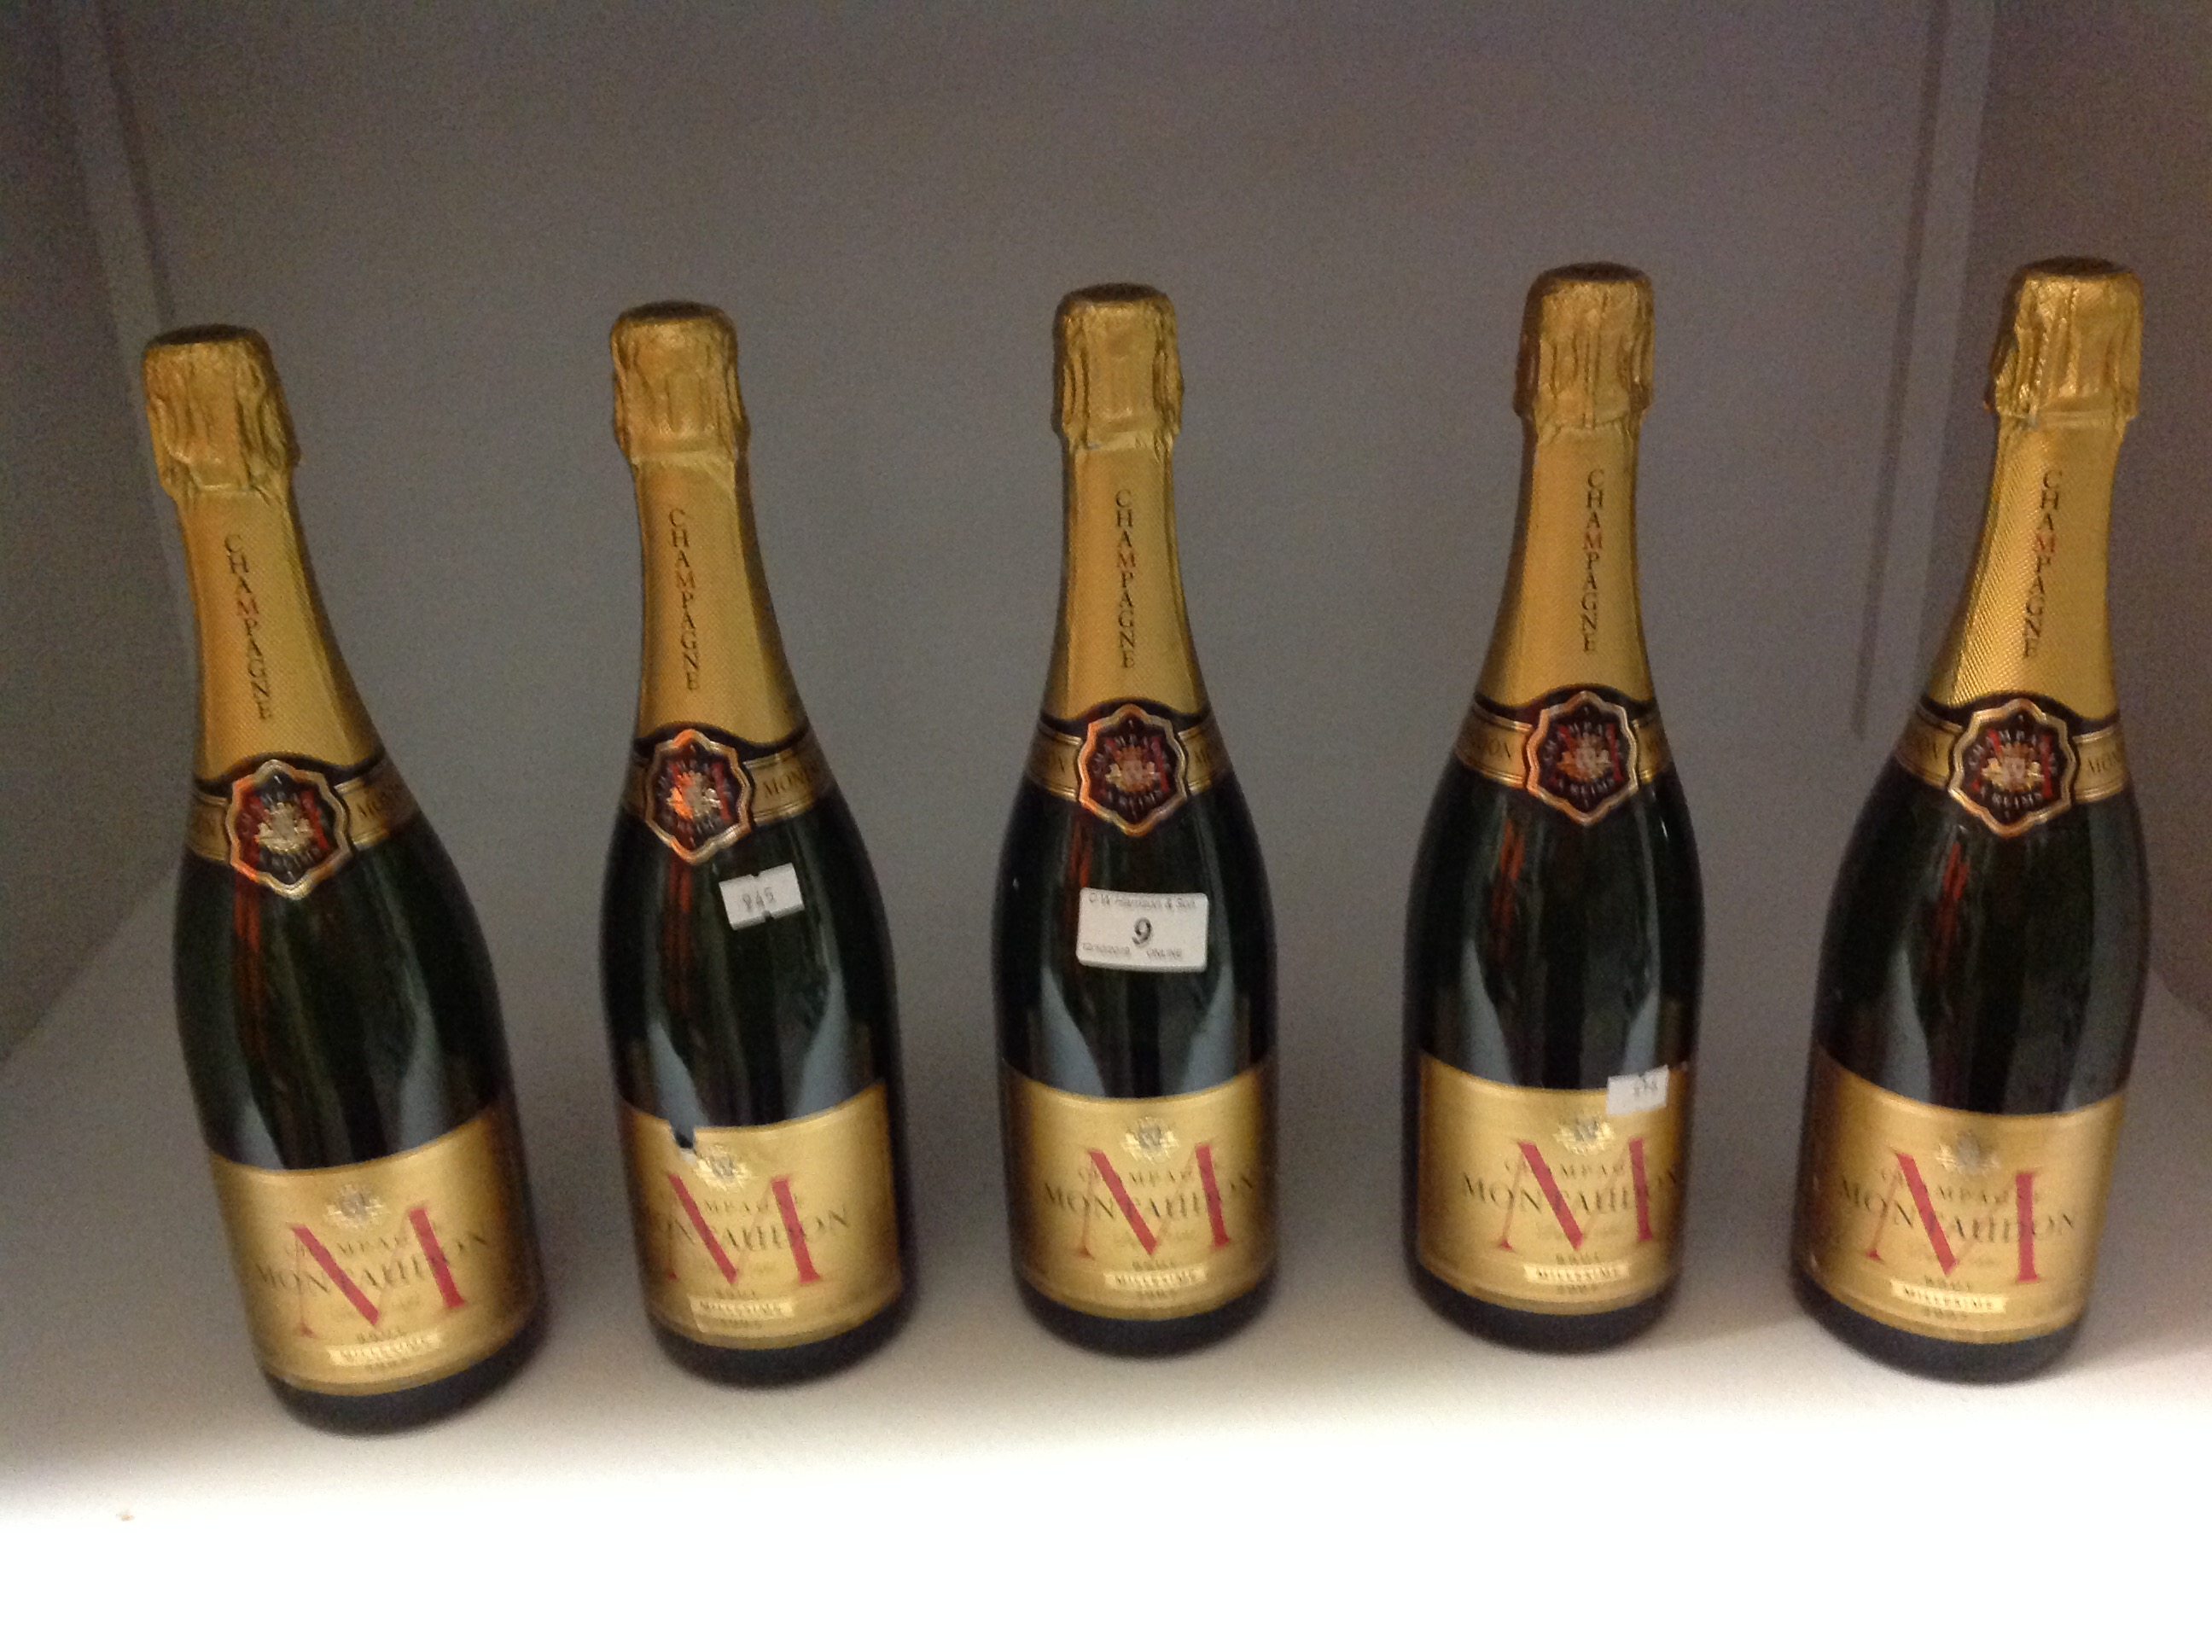 Lot 9 - 5 x 750ml bottles Montaudon 2007 Brut Mi